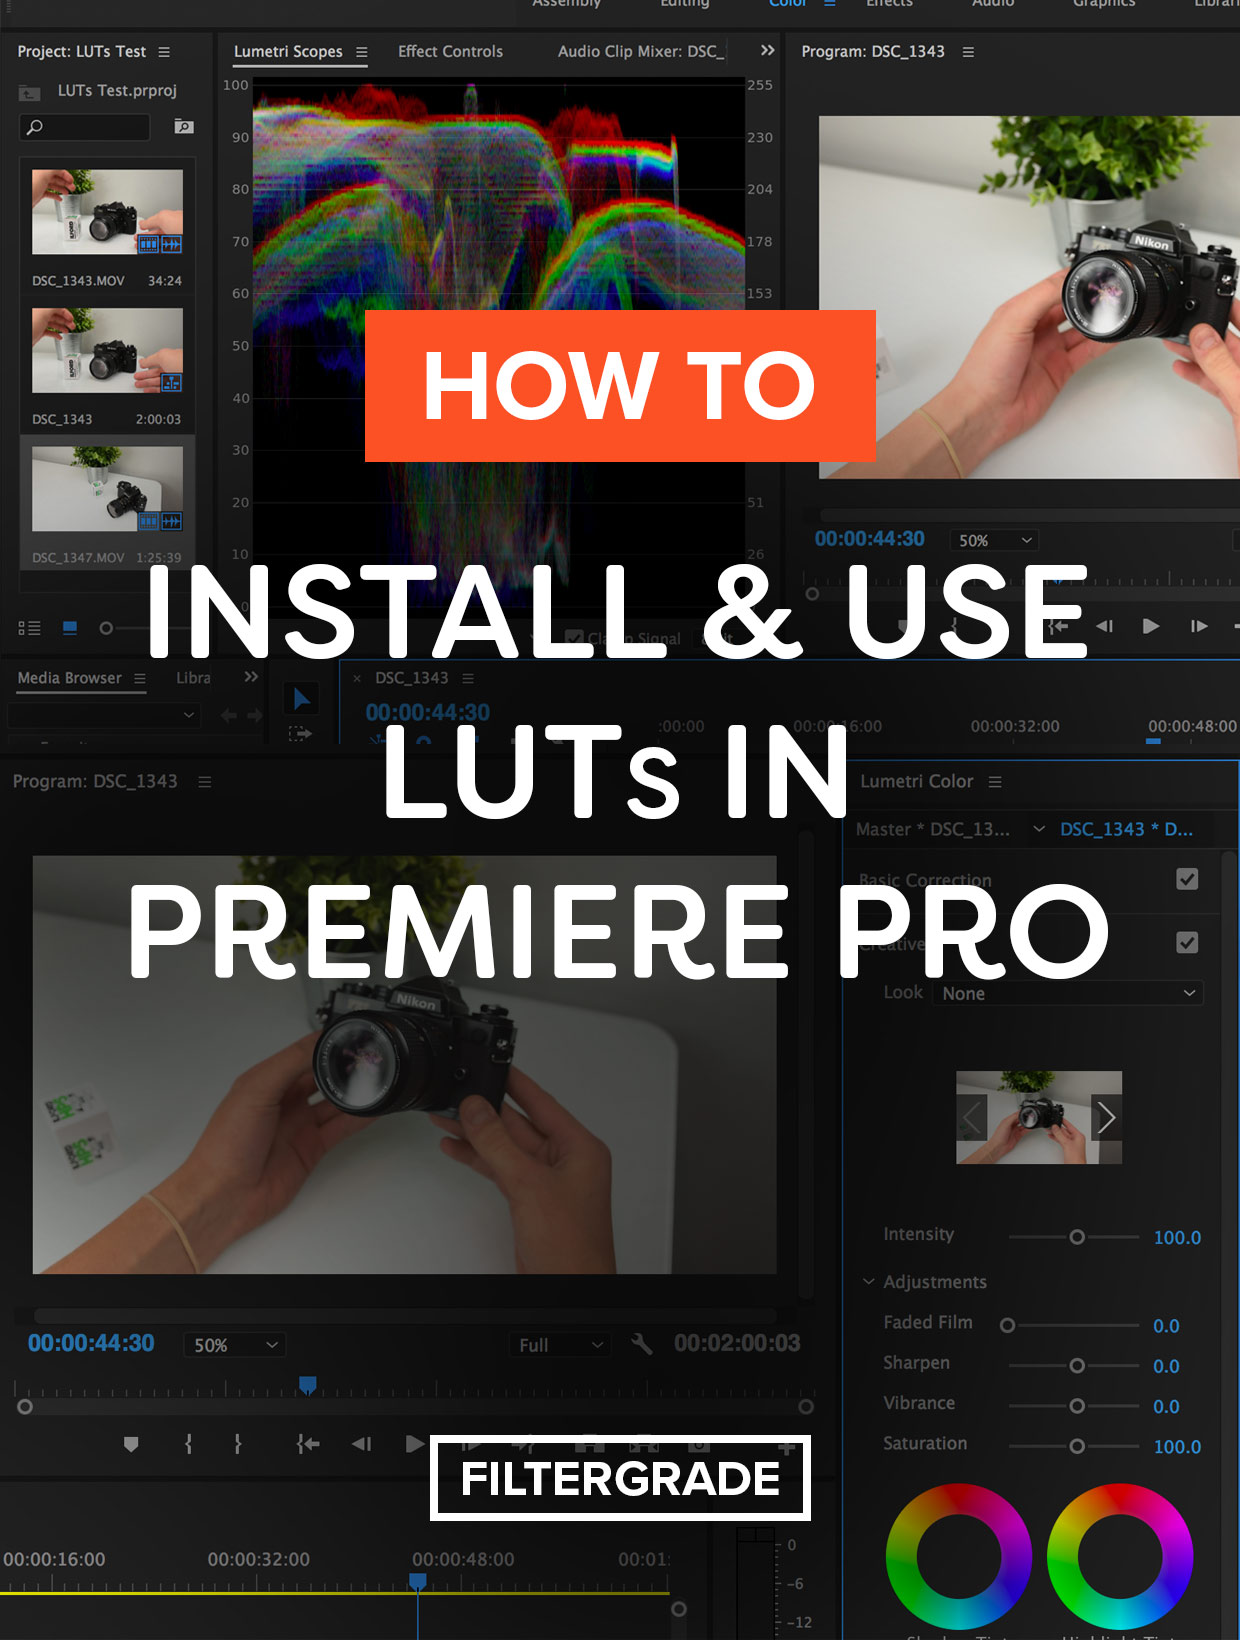 How to Install and Use LUTs in Premiere Pro step by step tutorial.